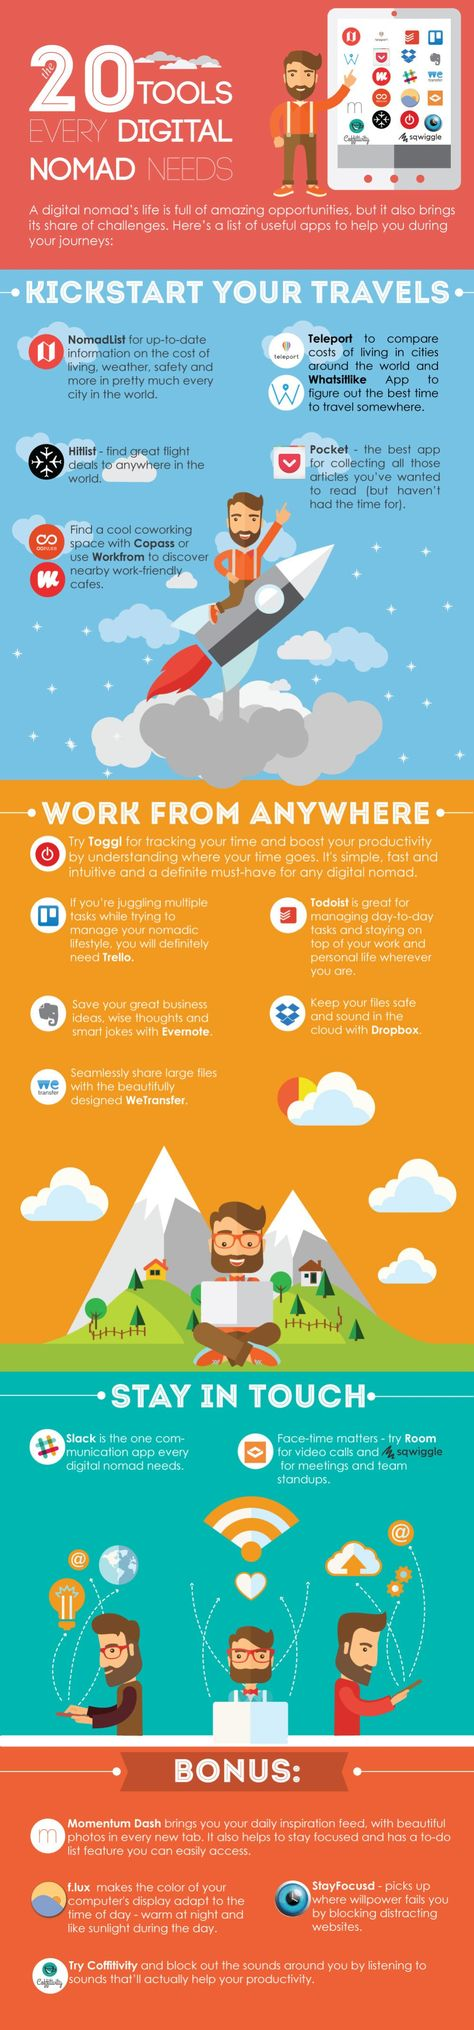 20 Essential Apps Every Digital Nomad Needs in Their Life [Infographic] - Toggl Blog